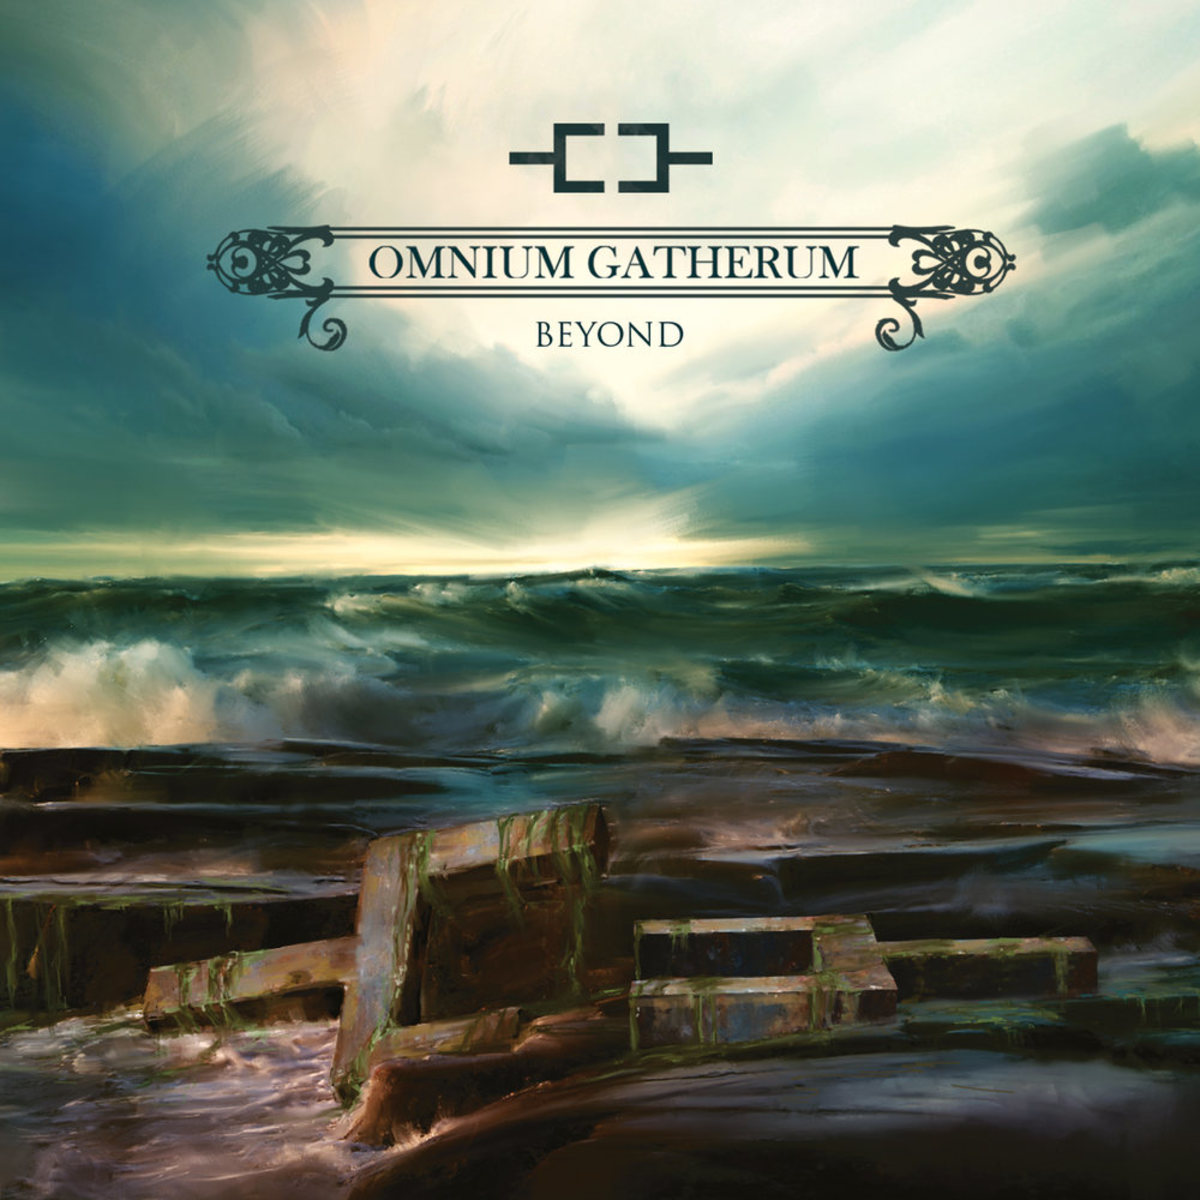 omnium-gatherum-beyond-melodic-death-metal-album-review